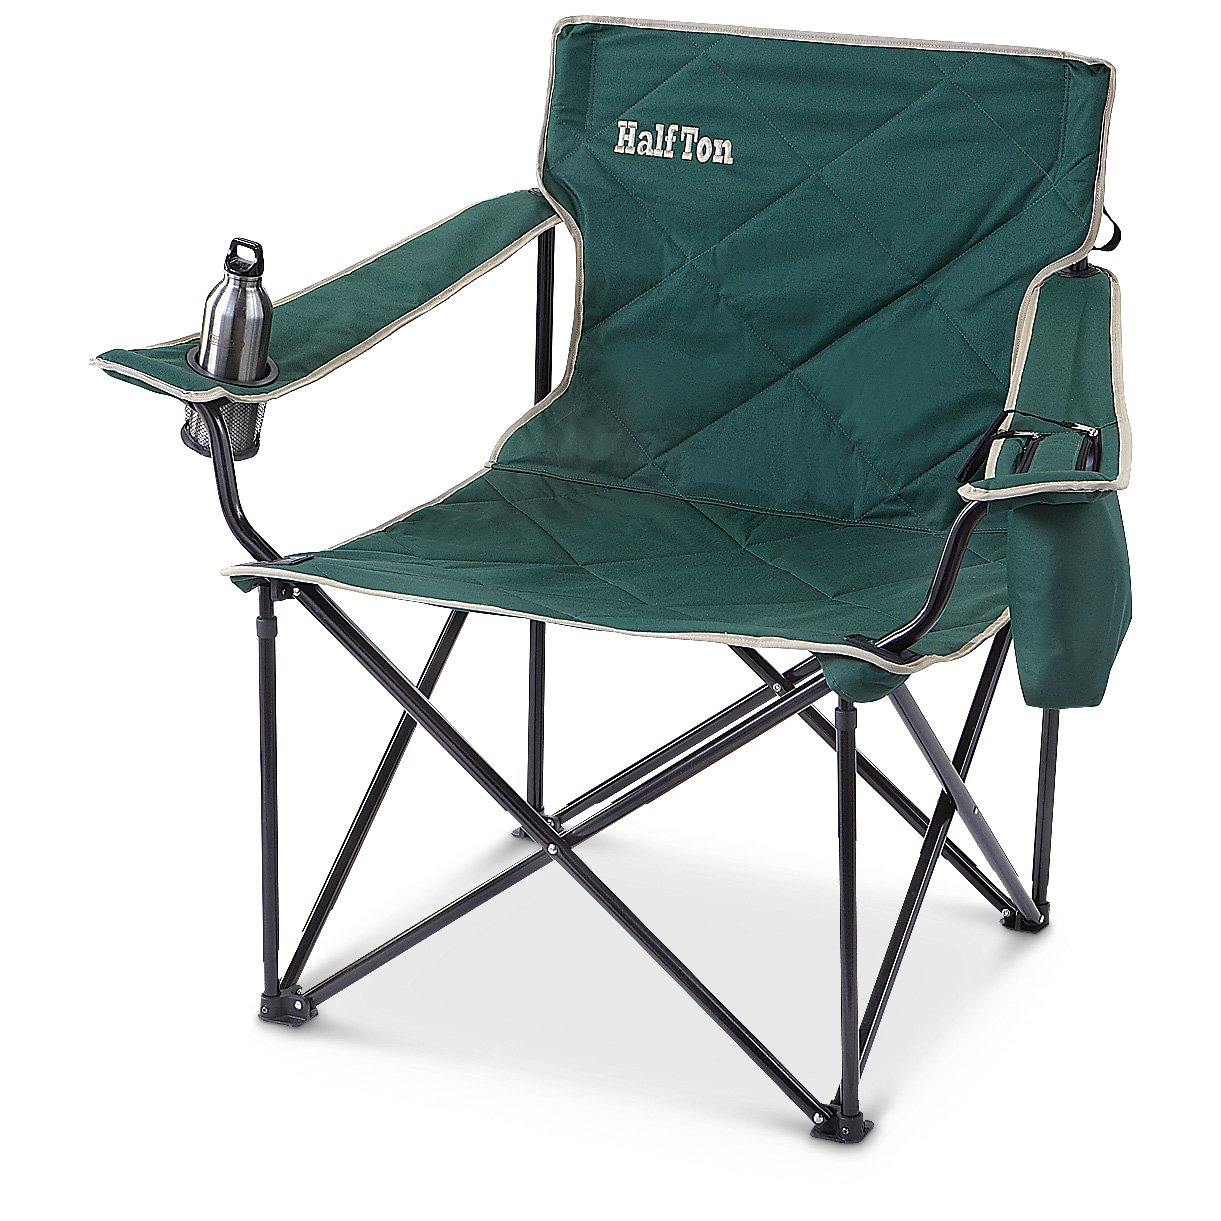 Nice Folding Chairs Recommend A Folding Camping Lawn Chair For A Fat Man